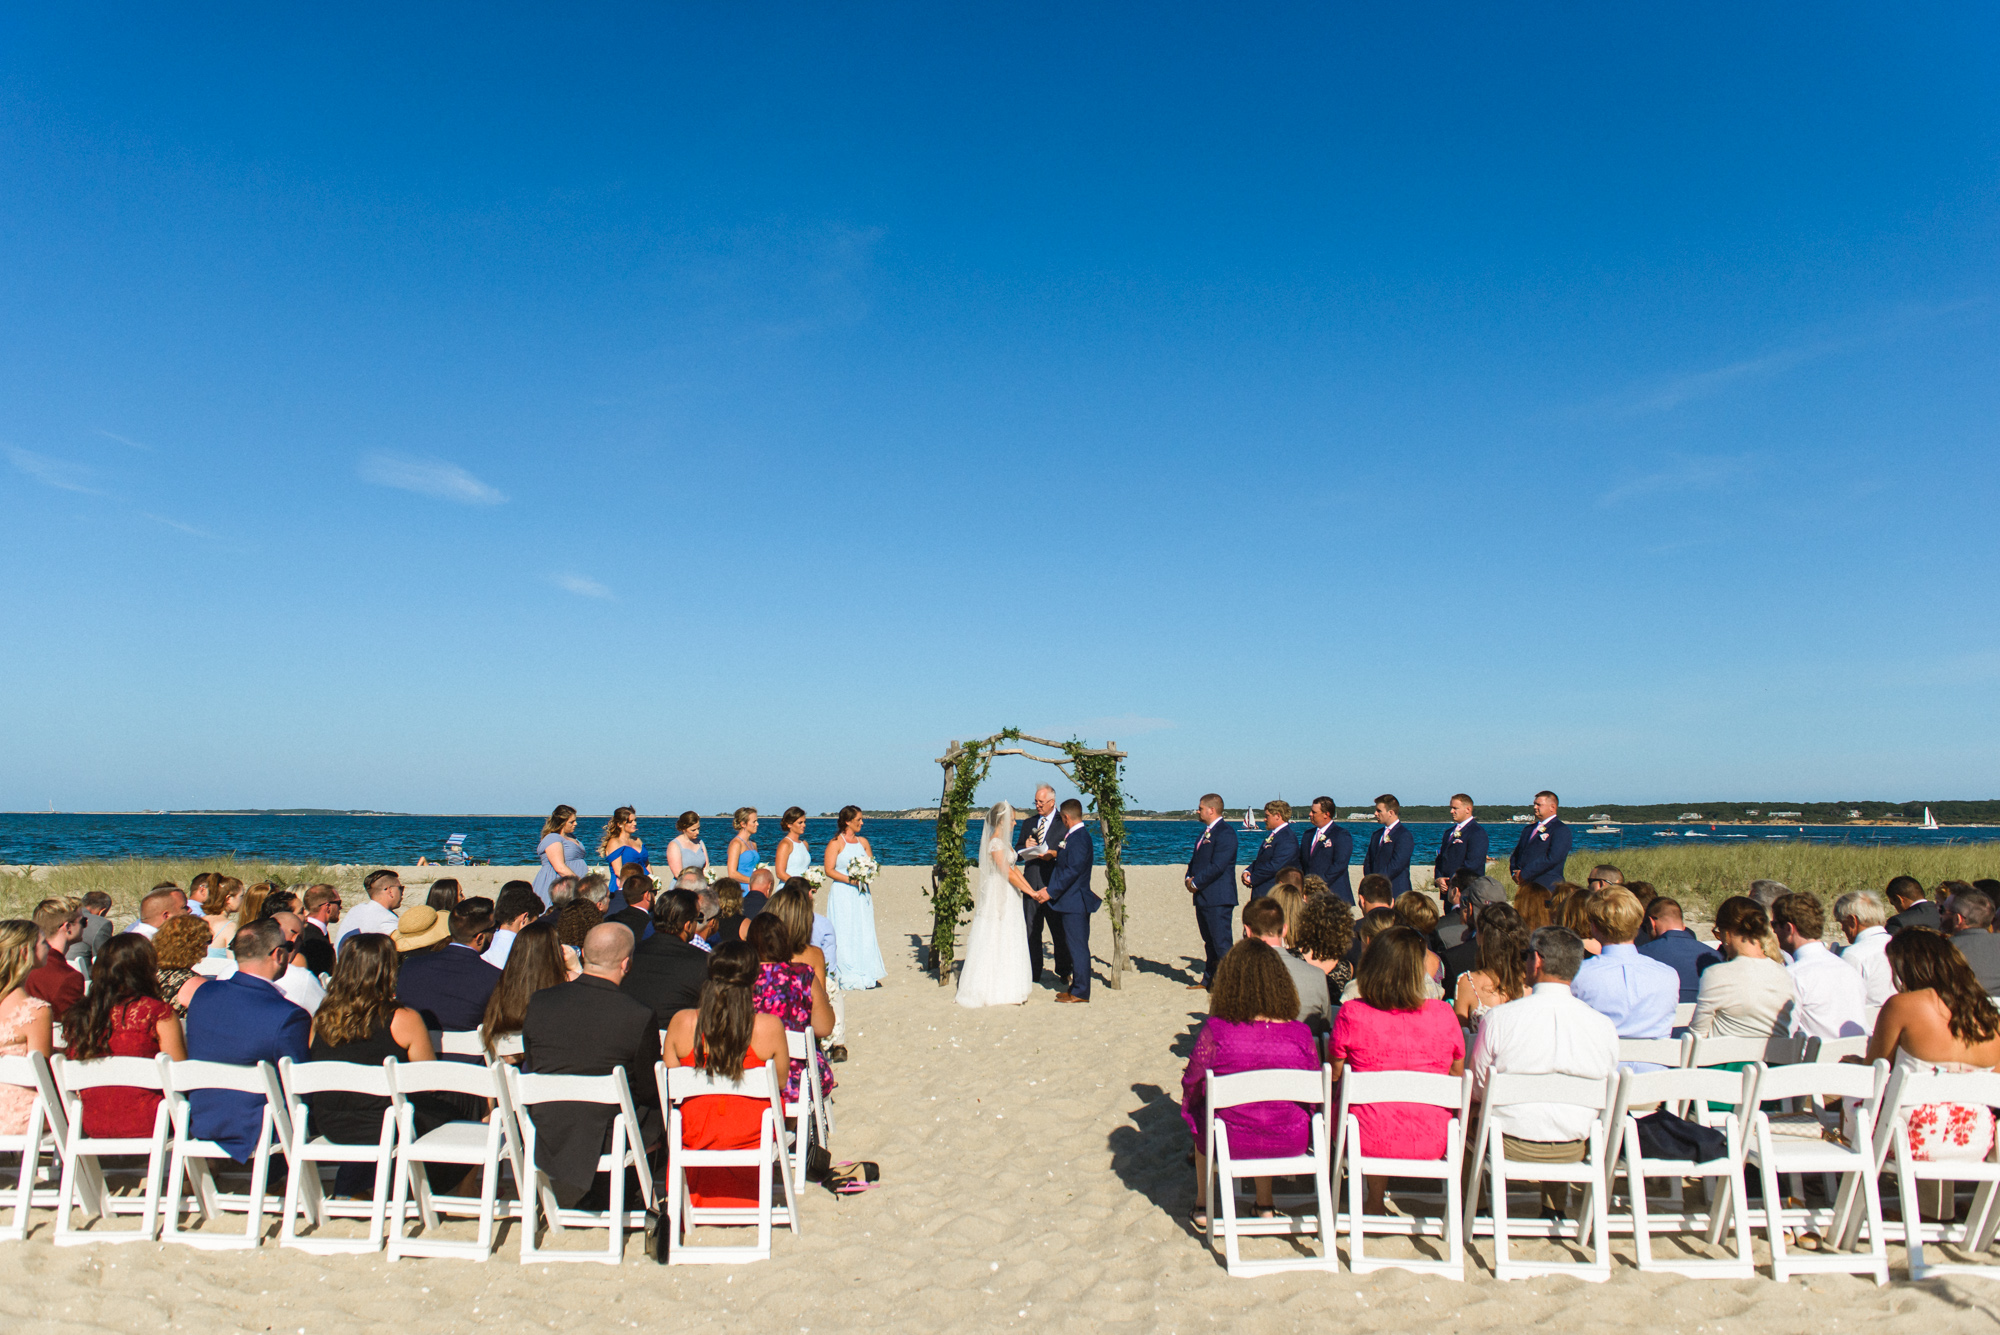 A wedding ceremony the Edgartown Lighthouse photo by David Welch Photography